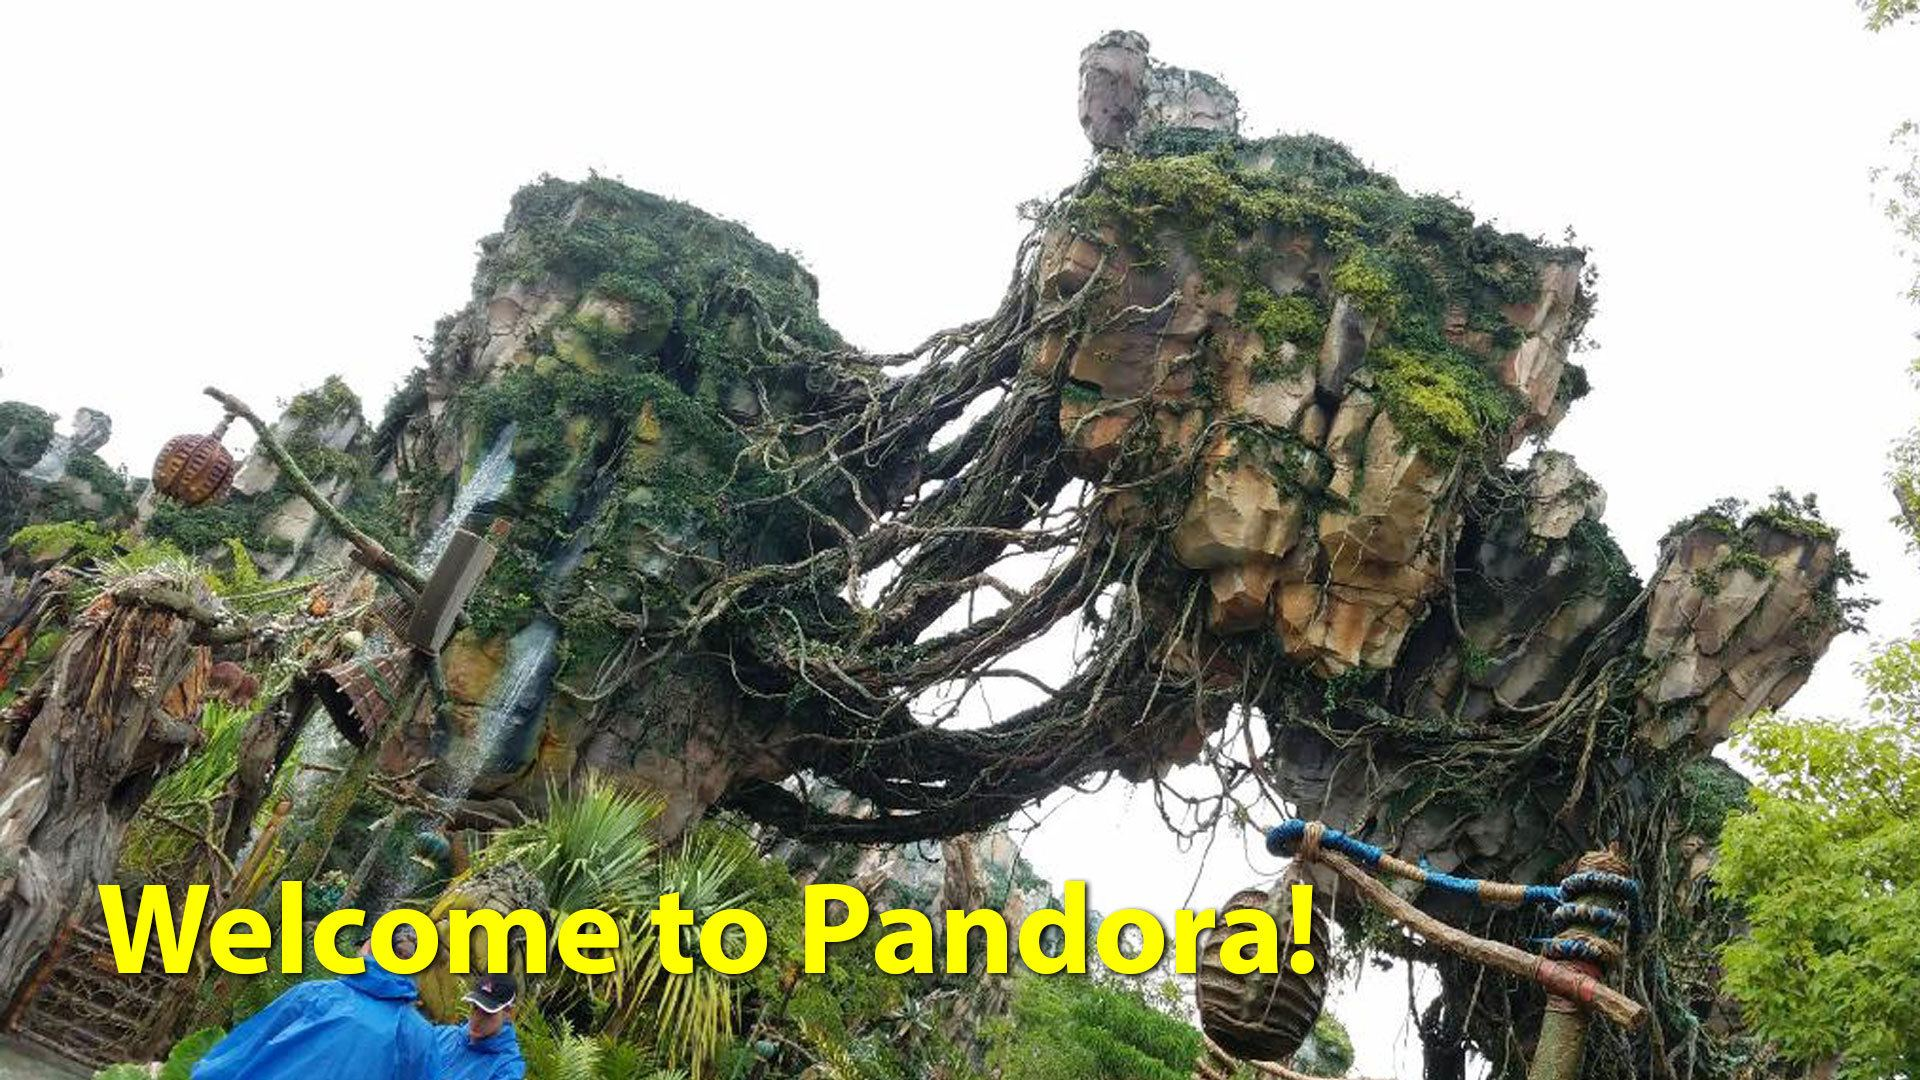 Welcome to Pandora! - Geeks Corner - Episode 636